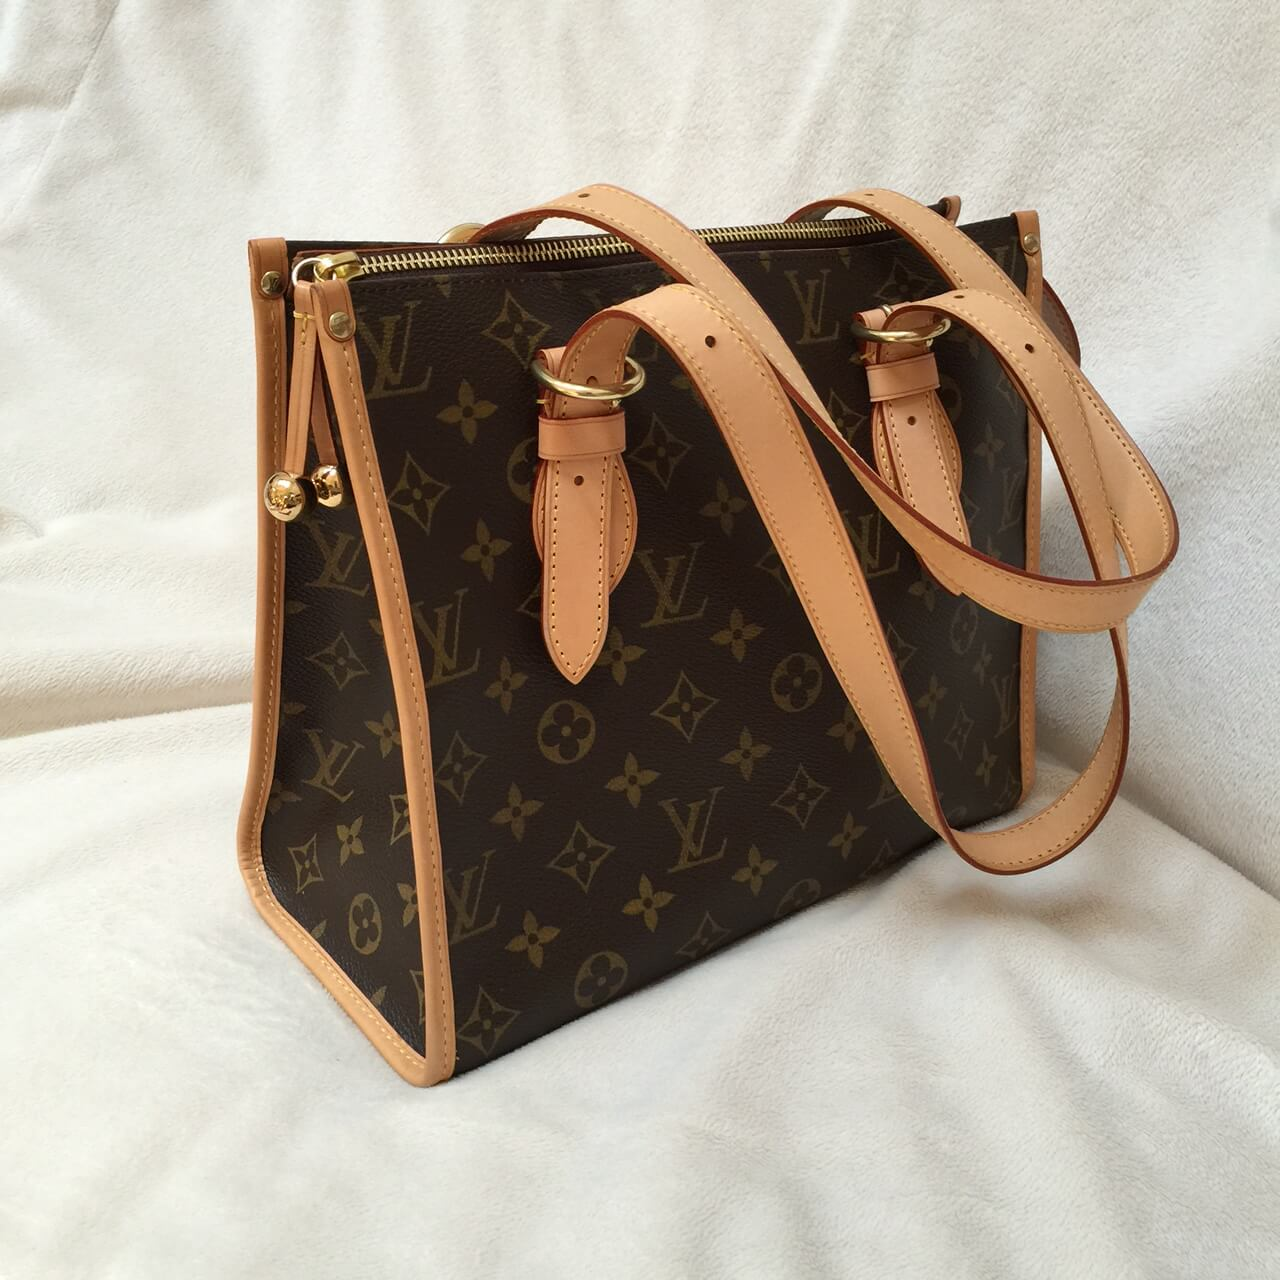 9b027f71147 How to Repair a Damaged Louis Vuitton Bag